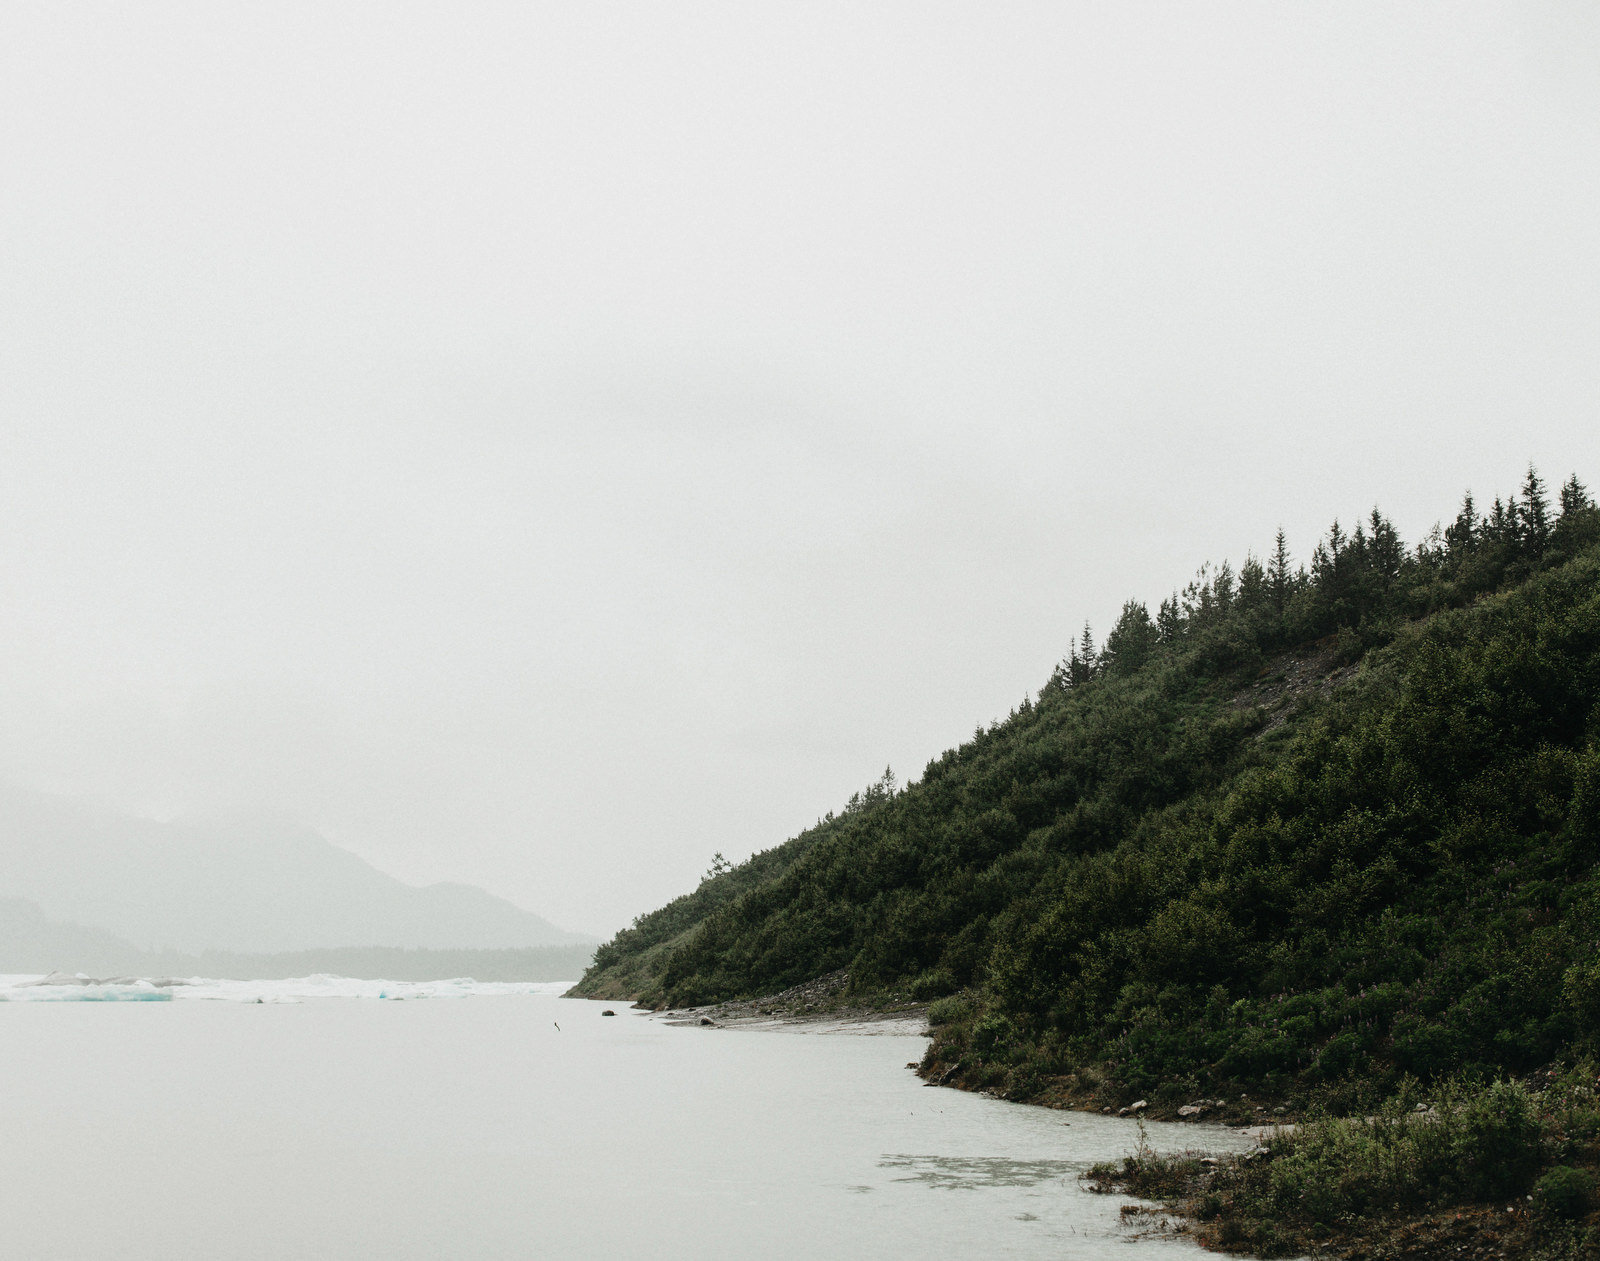 athena-and-camron-alaska-elopement-wedding-inspiration-india-earl-athena-grace-glacier-lagoon-wedding93